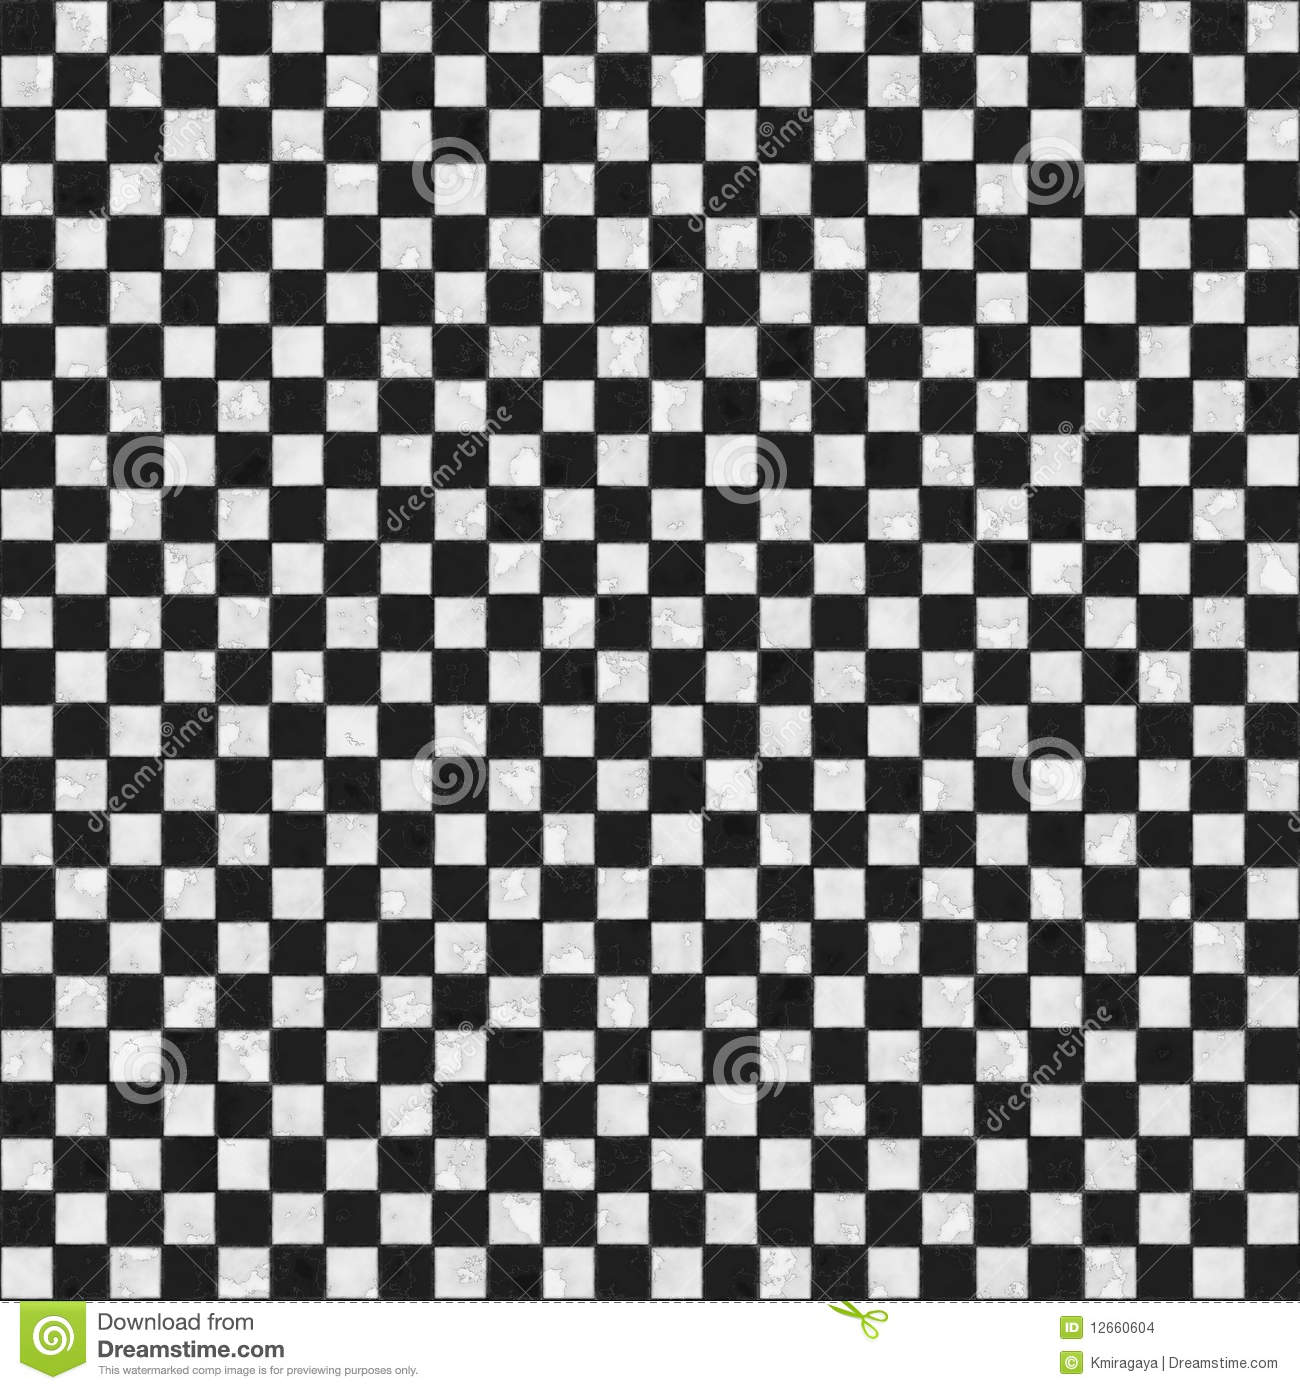 Seamless black and white checkered texture stock images image - Seamless Black And White Checkered Texture Stock Images